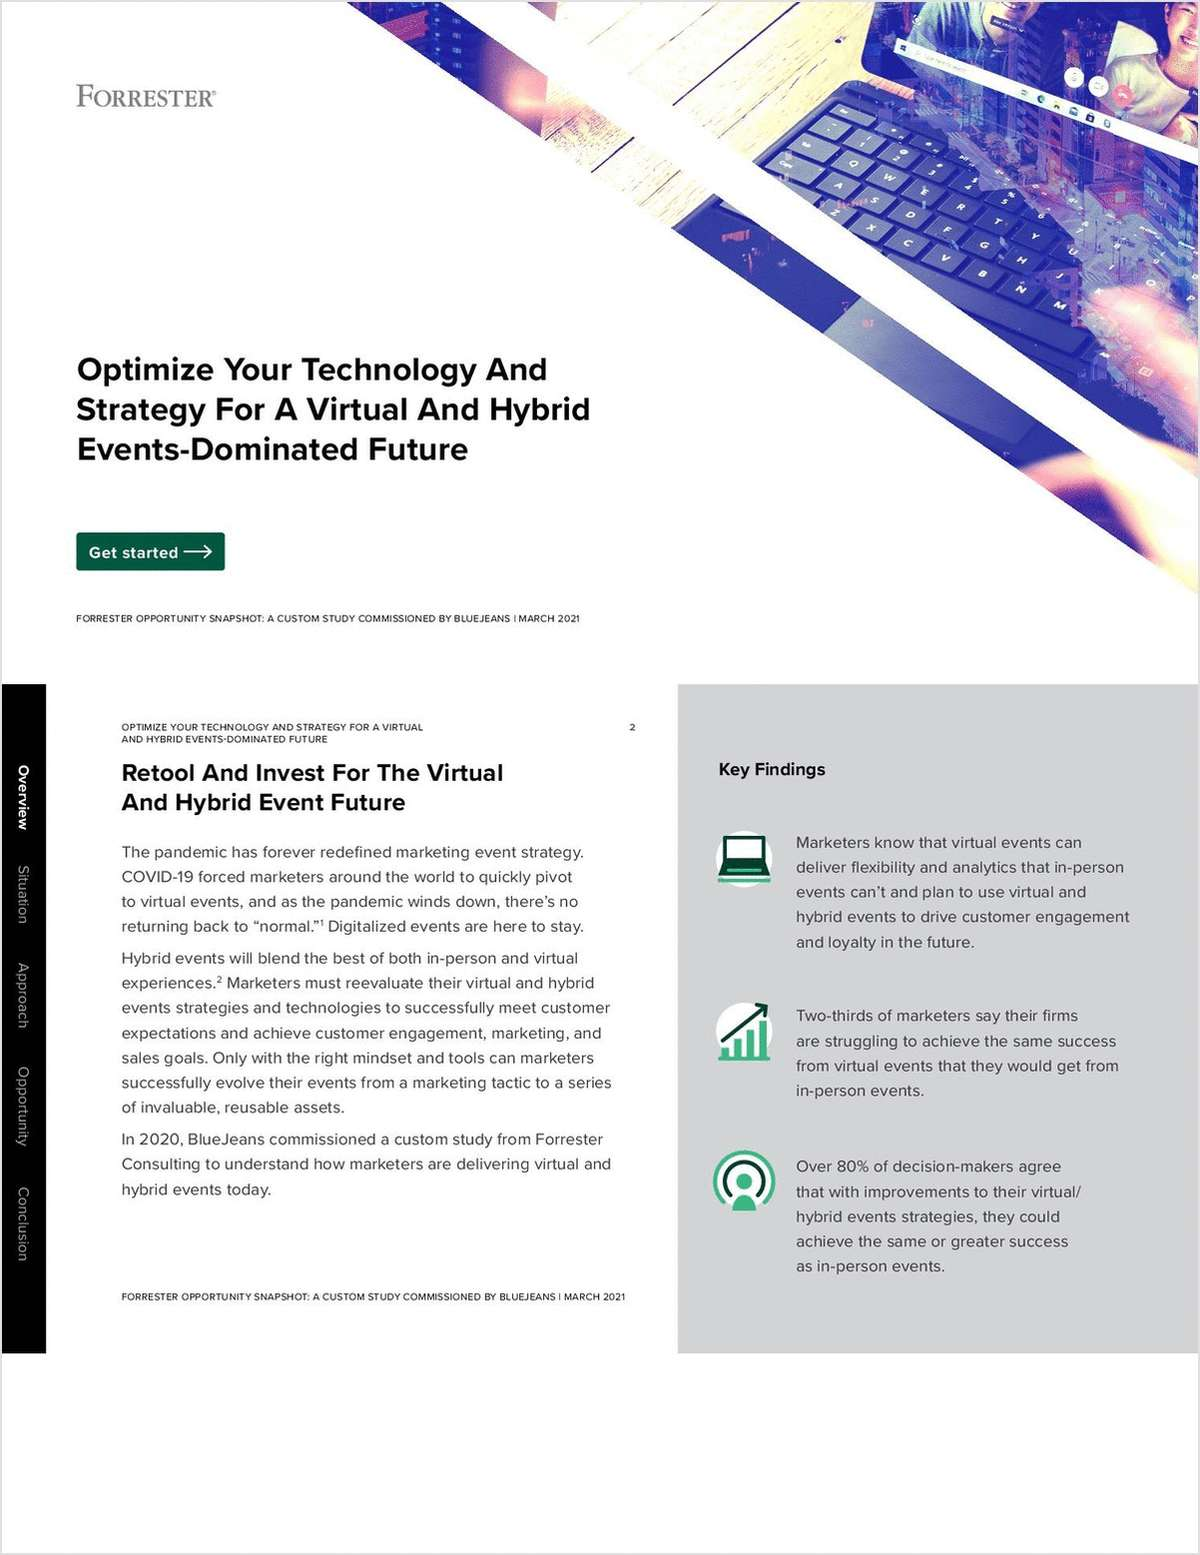 Forrester Report: Optimize Your Technology And Strategy For A Virtual And Hybrid Events-Dominated Future